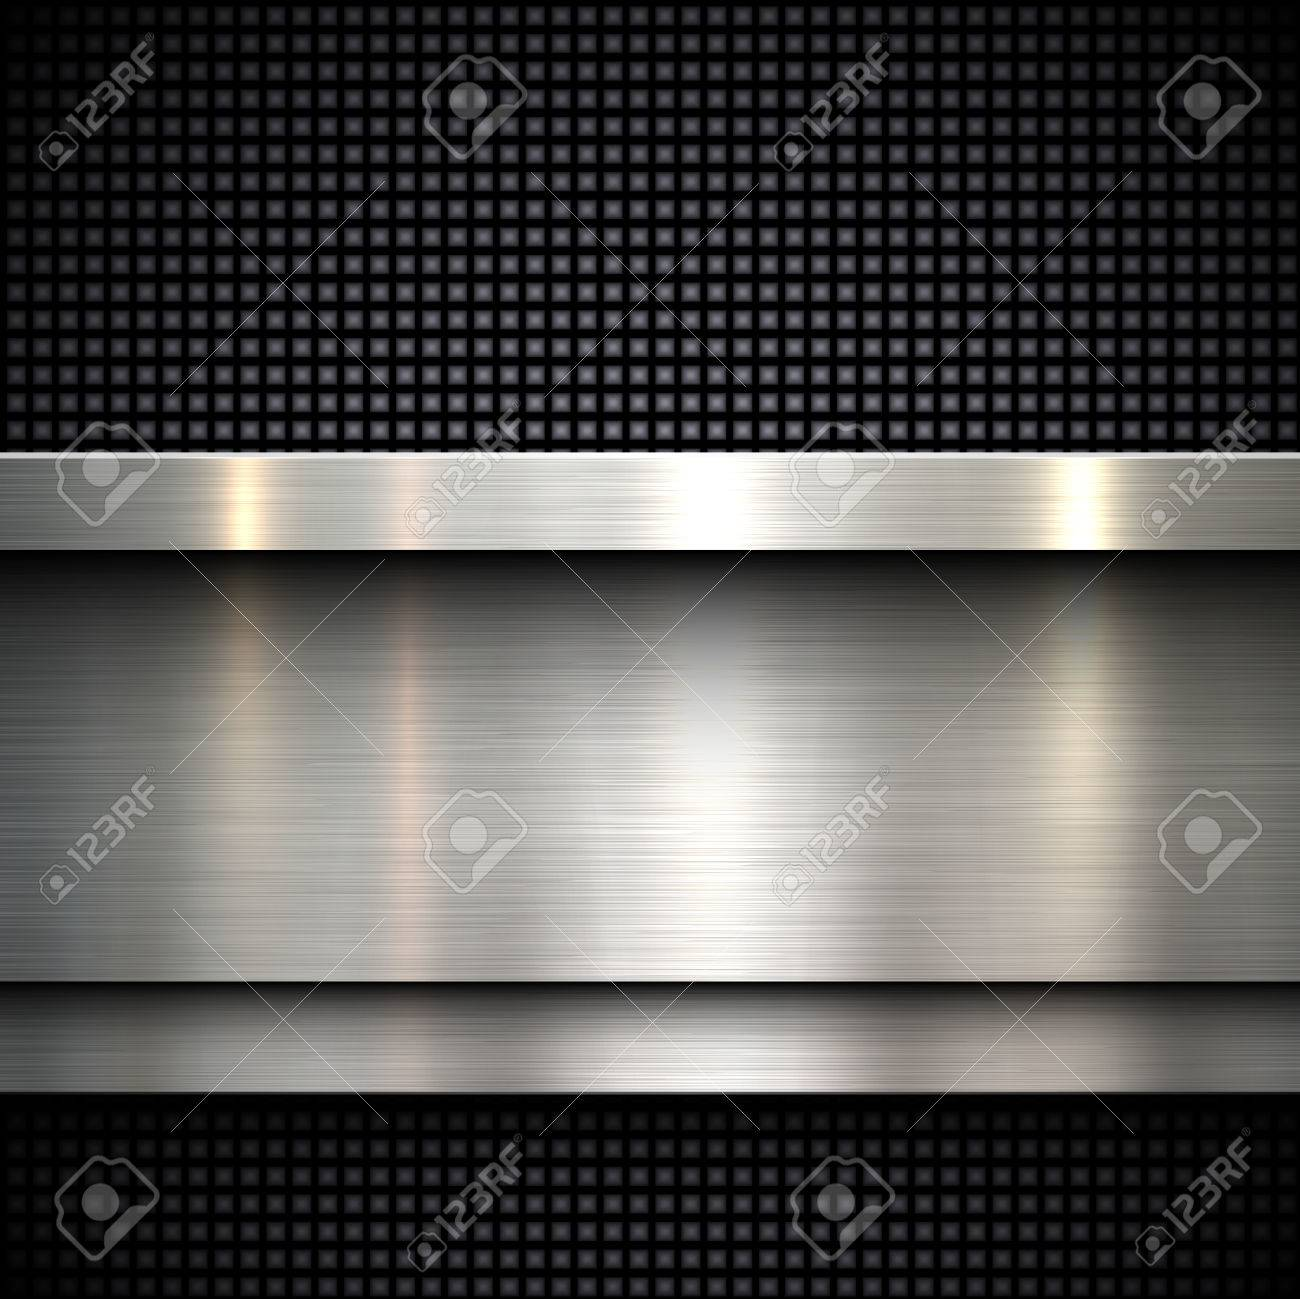 Abstract metal template background design, vector illustration - 39620588